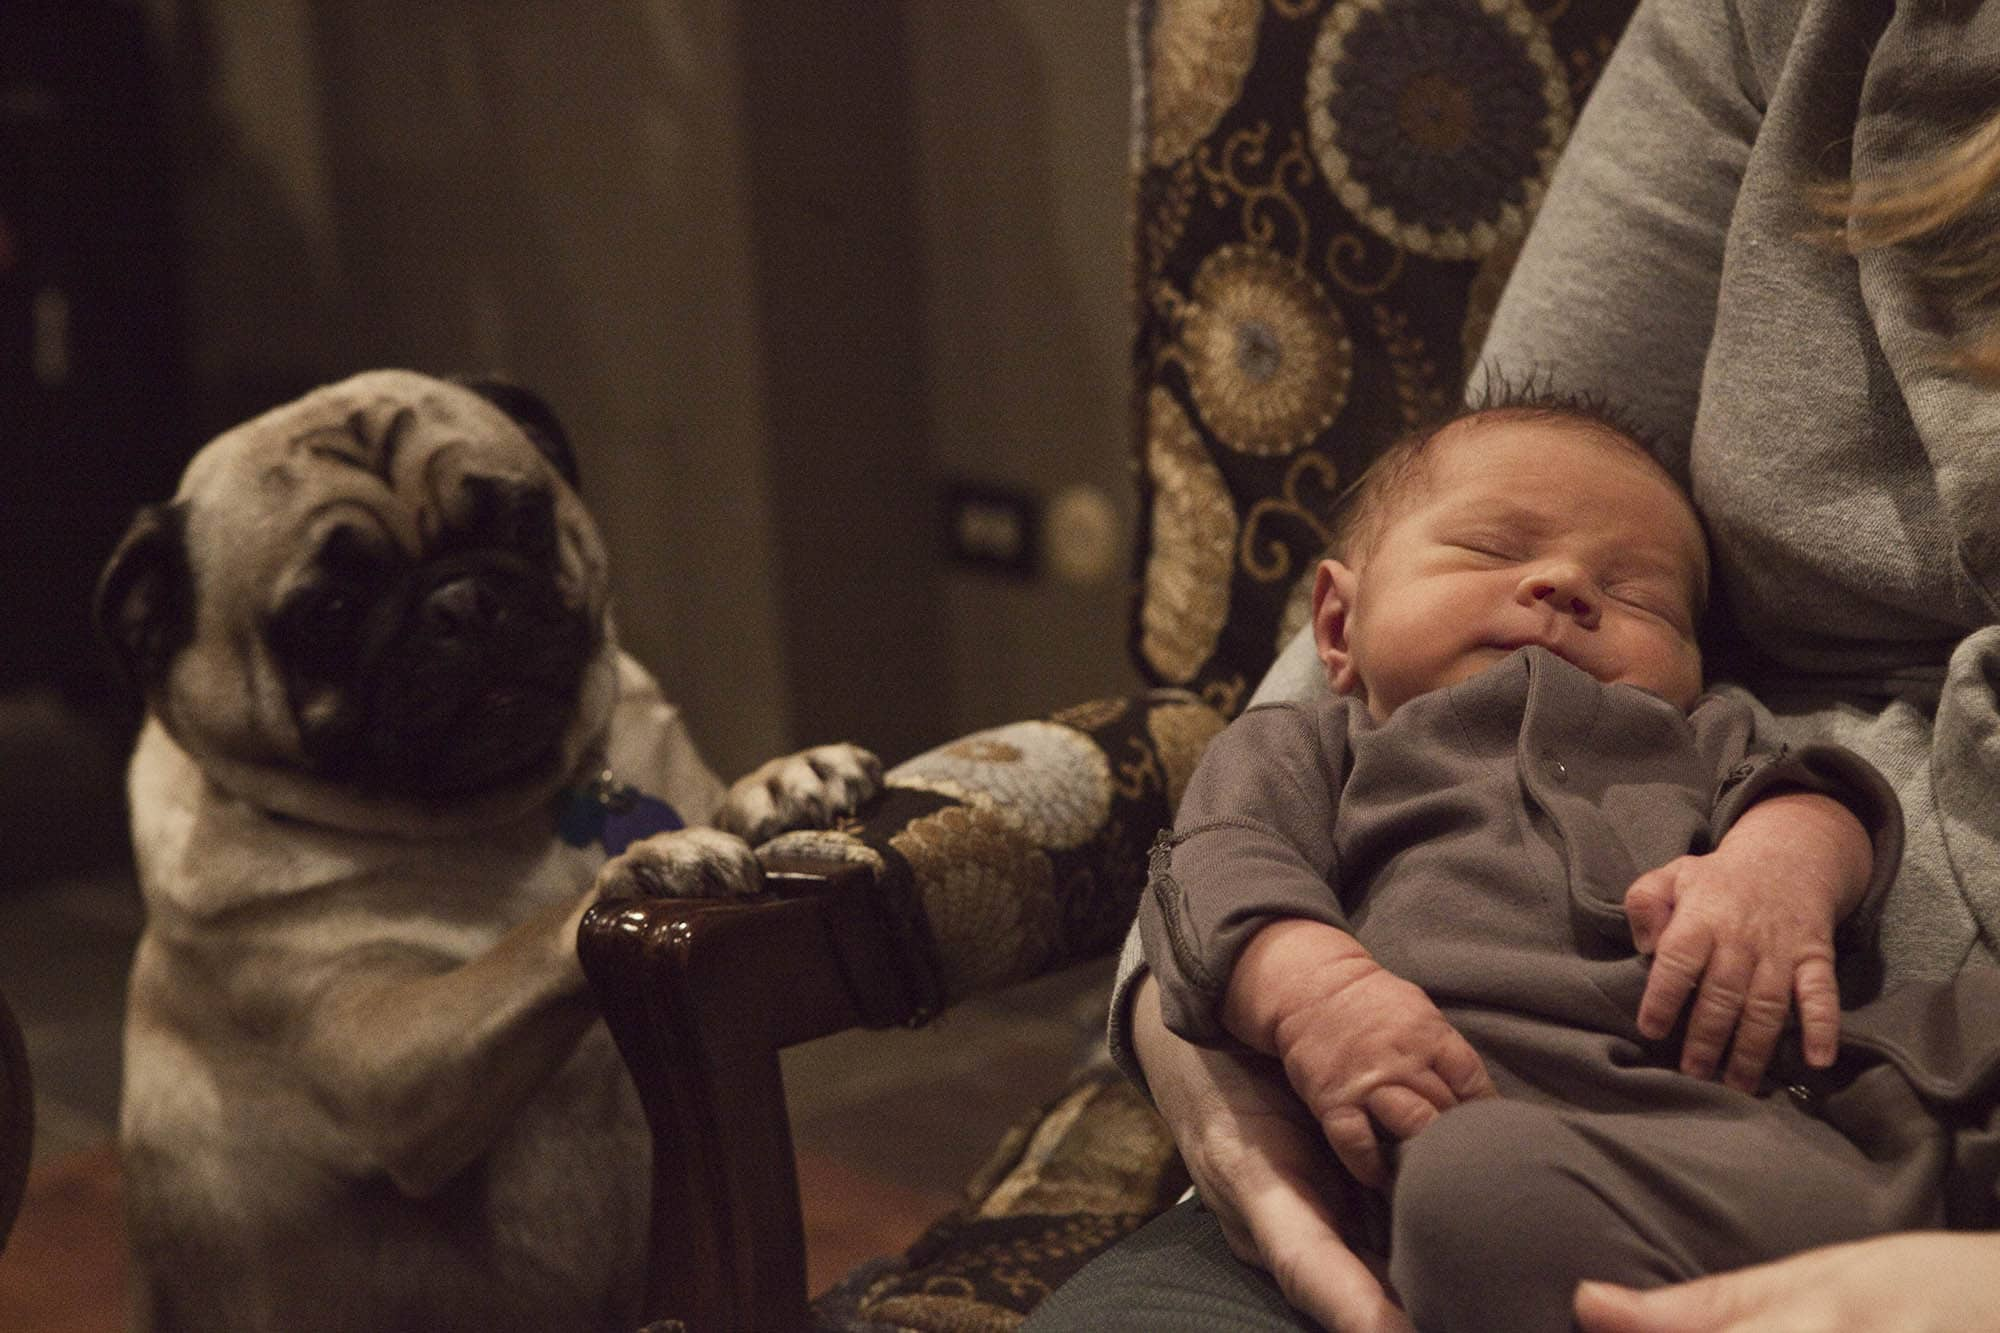 A baby and a pug